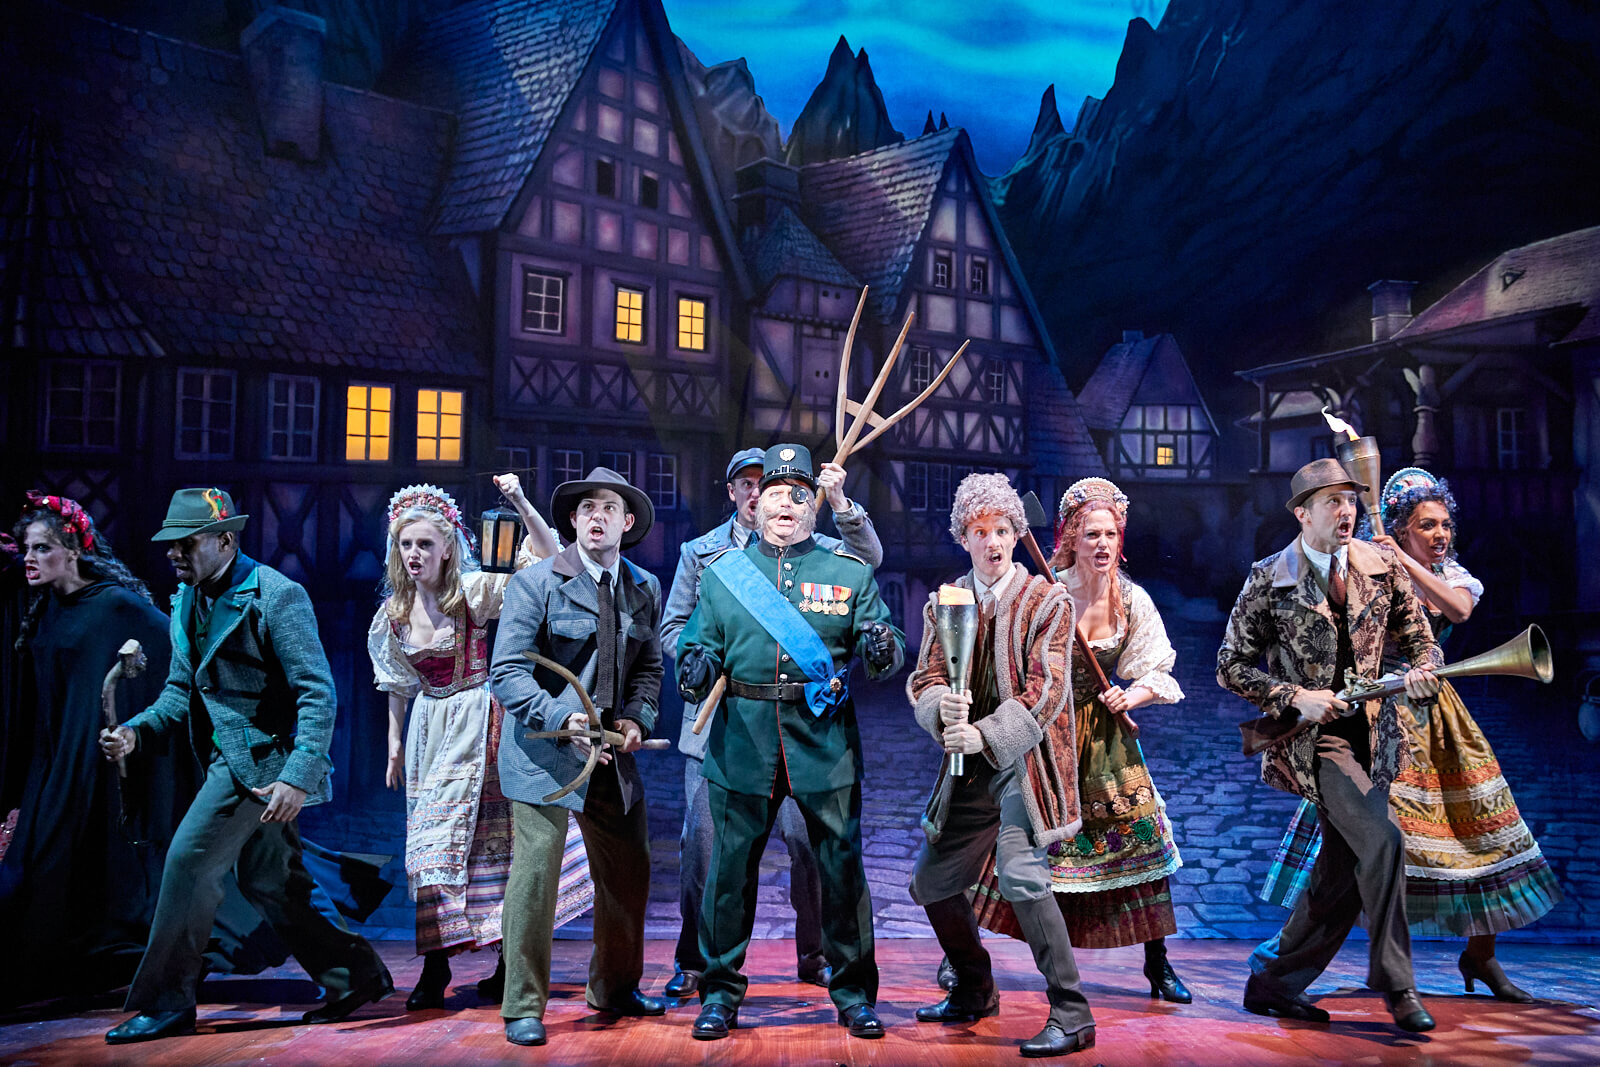 """Inspector Kemp (Patrick Clancy) sings """"Hang Him Til He's Dead"""" with the angry villagers of Transylvania backing him up with various weapons."""